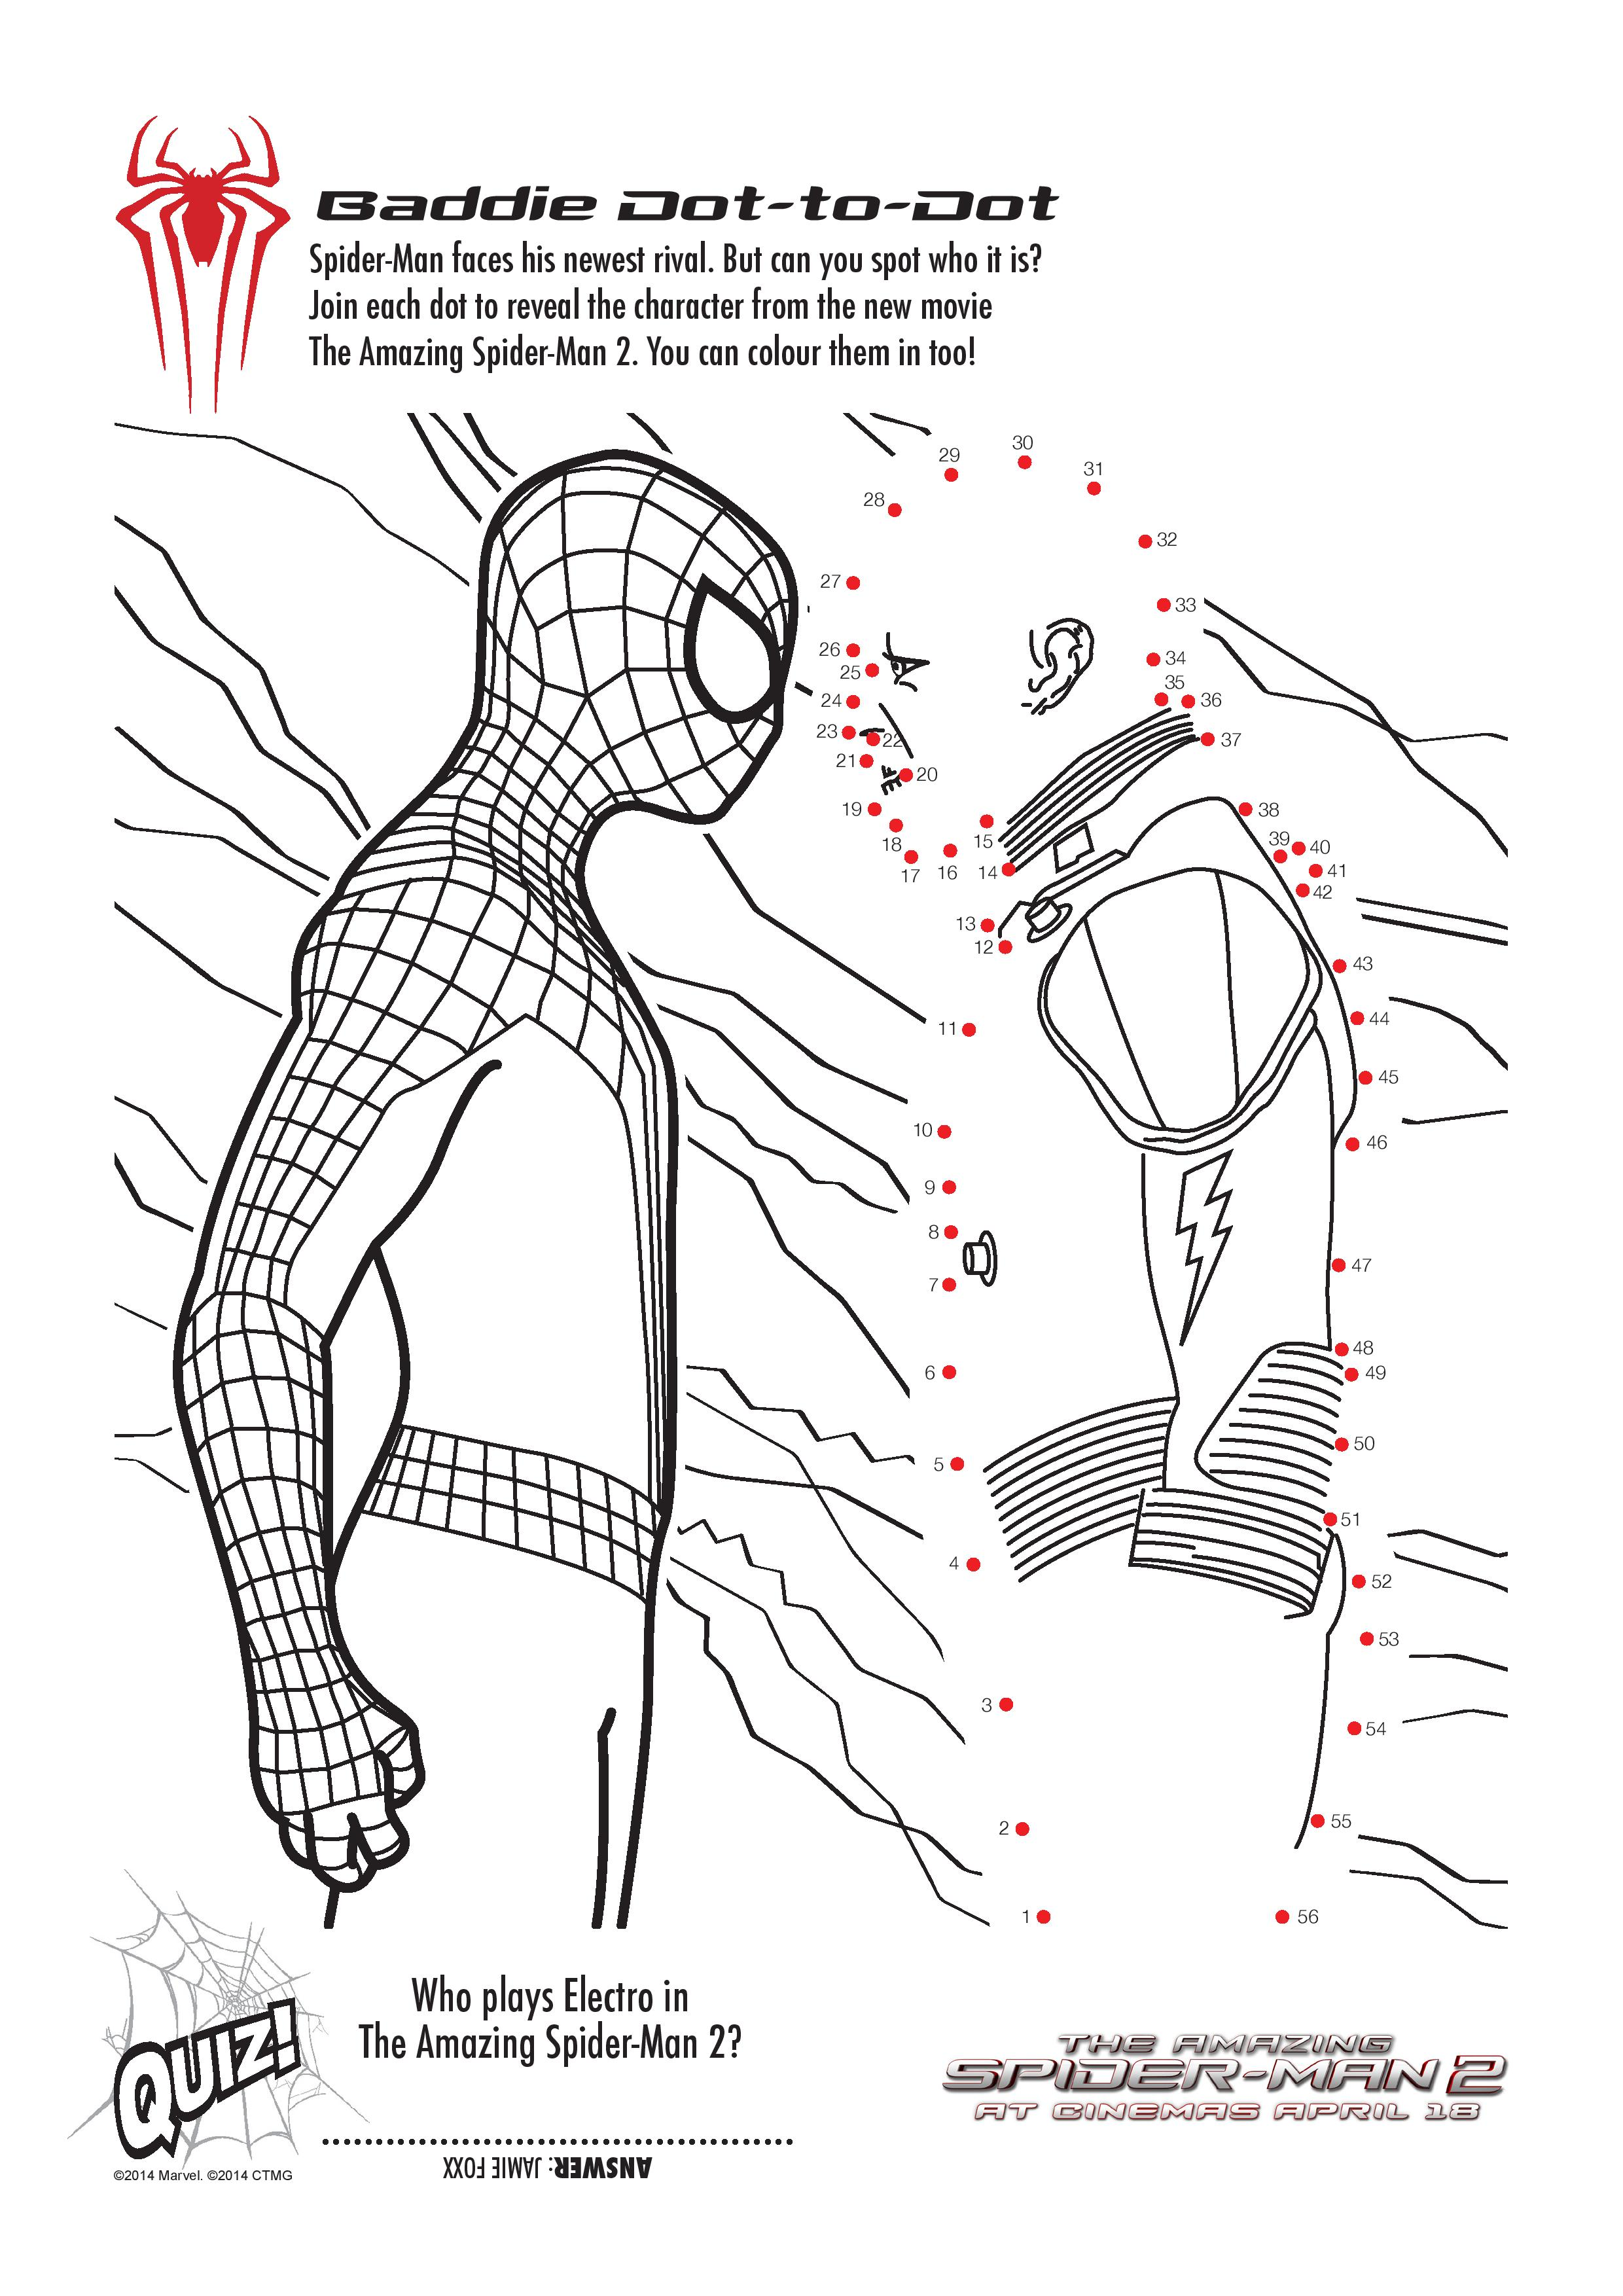 Free Printable Spiderman Colouring Pages And Activity Sheets In The Playroom